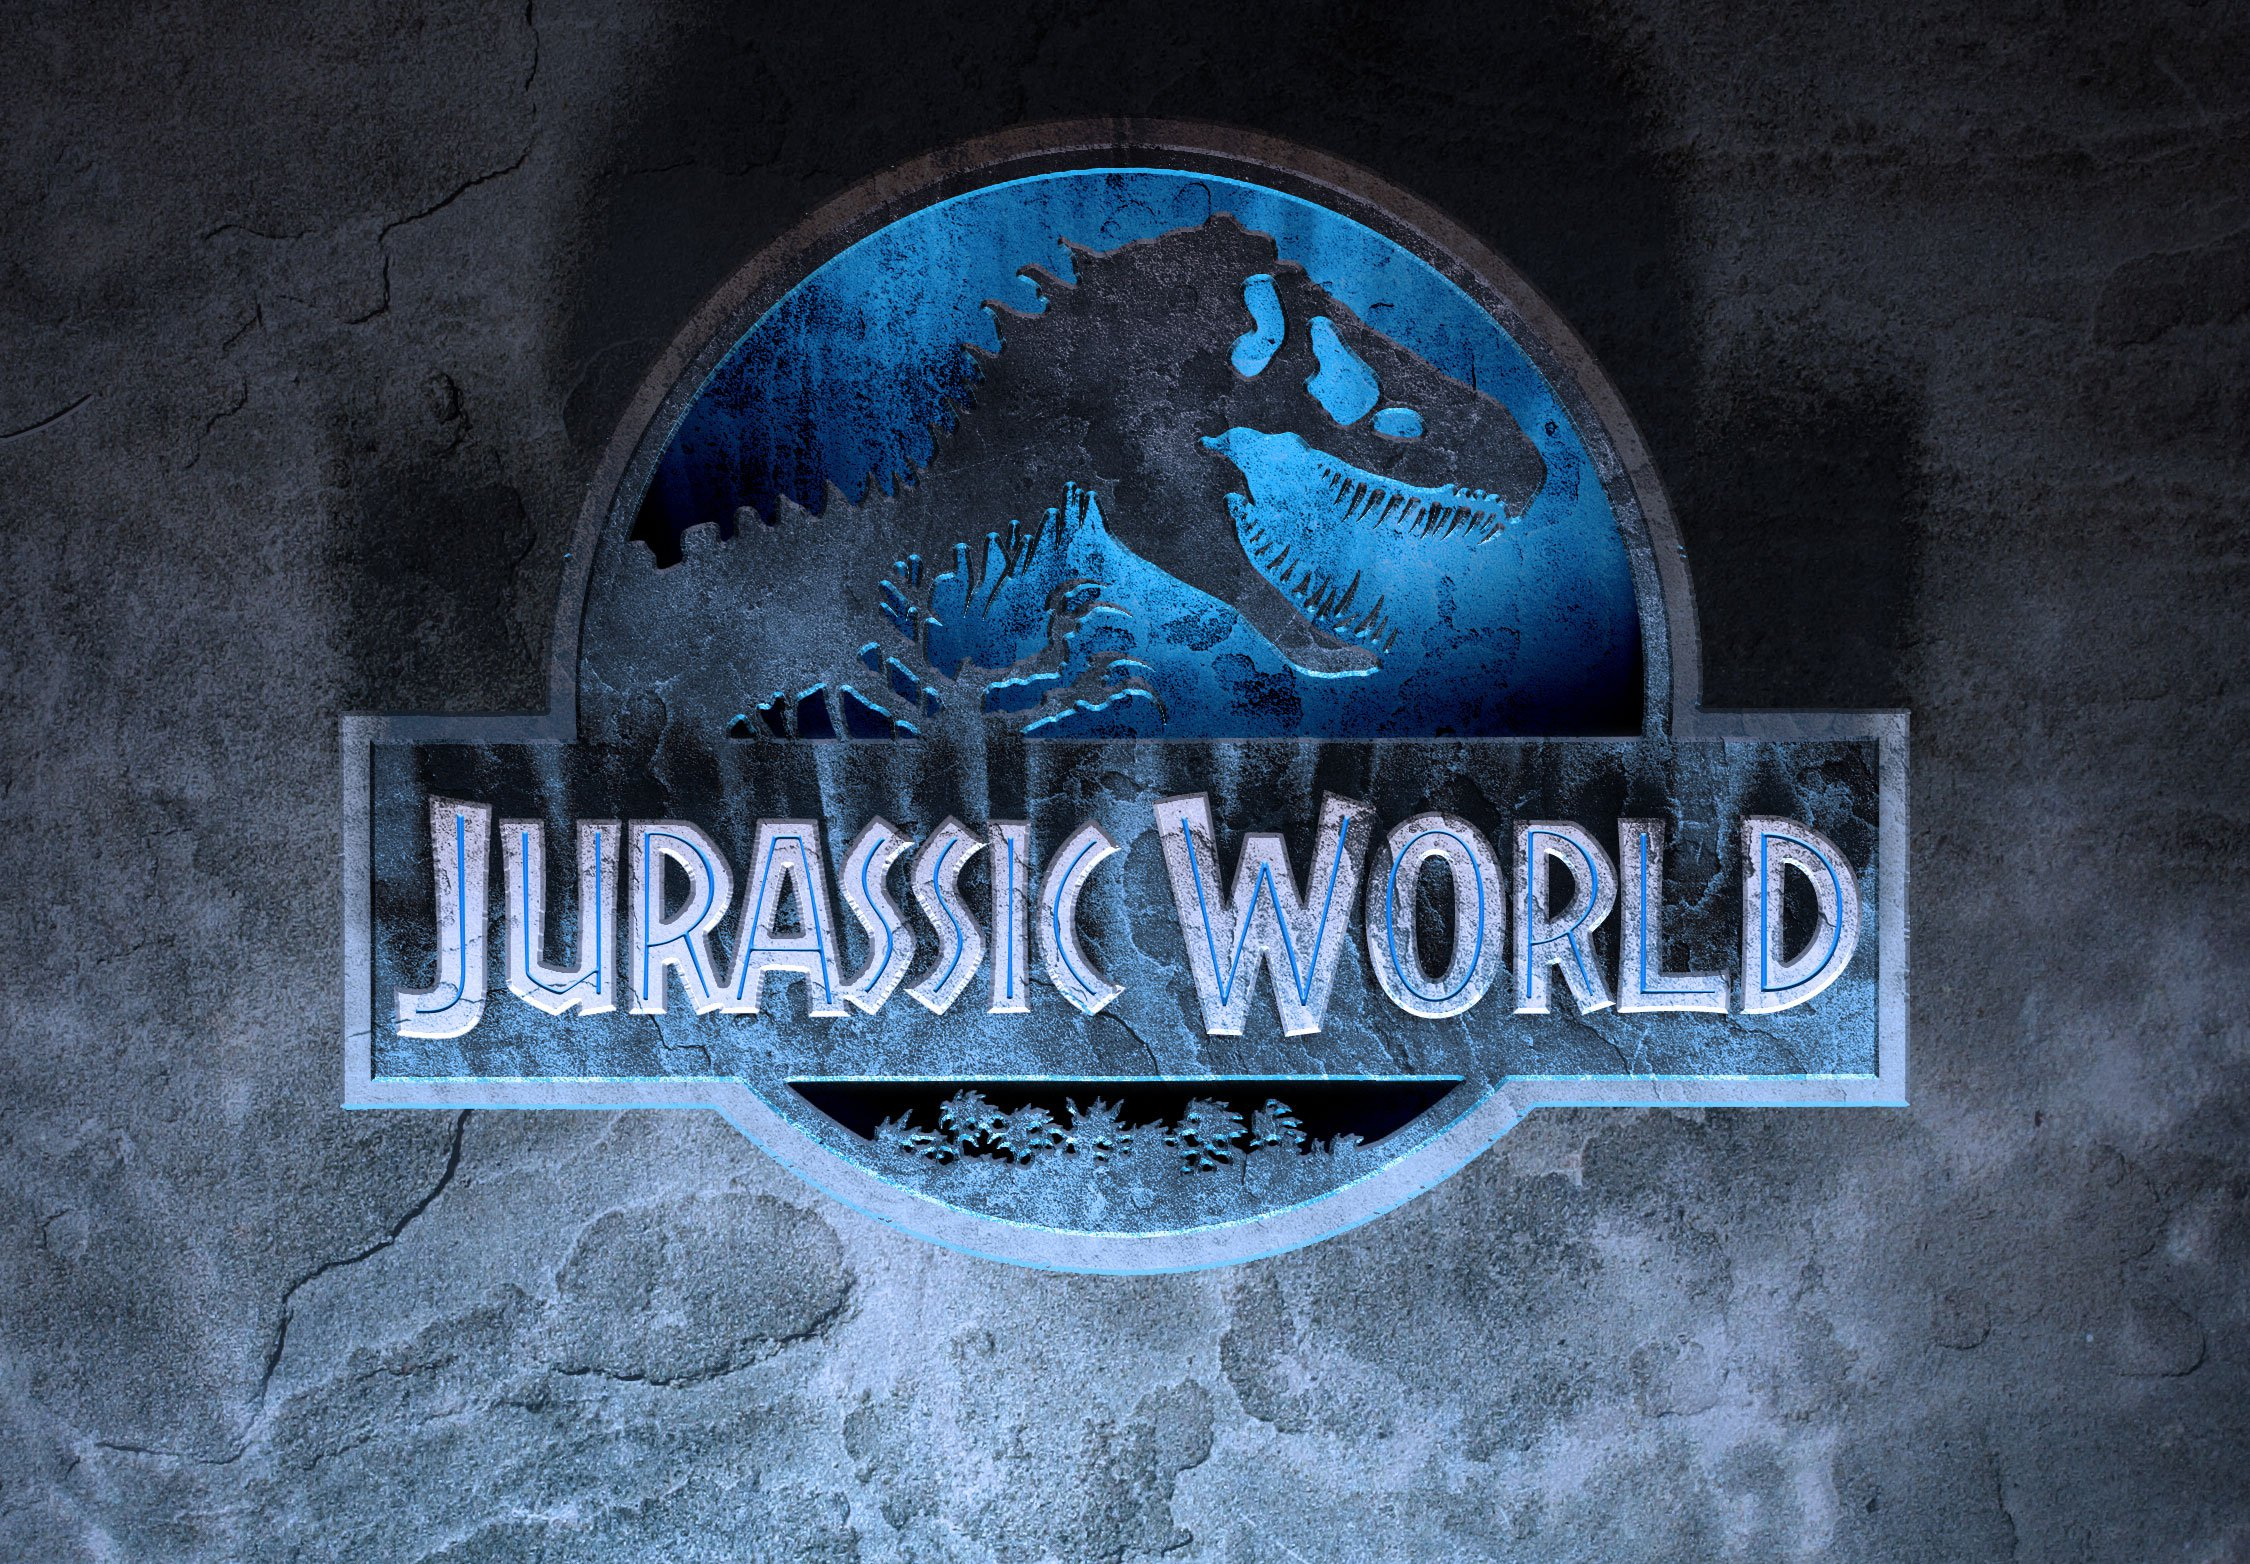 Jurassic World: Jurassic World Stomps Into Homes This October